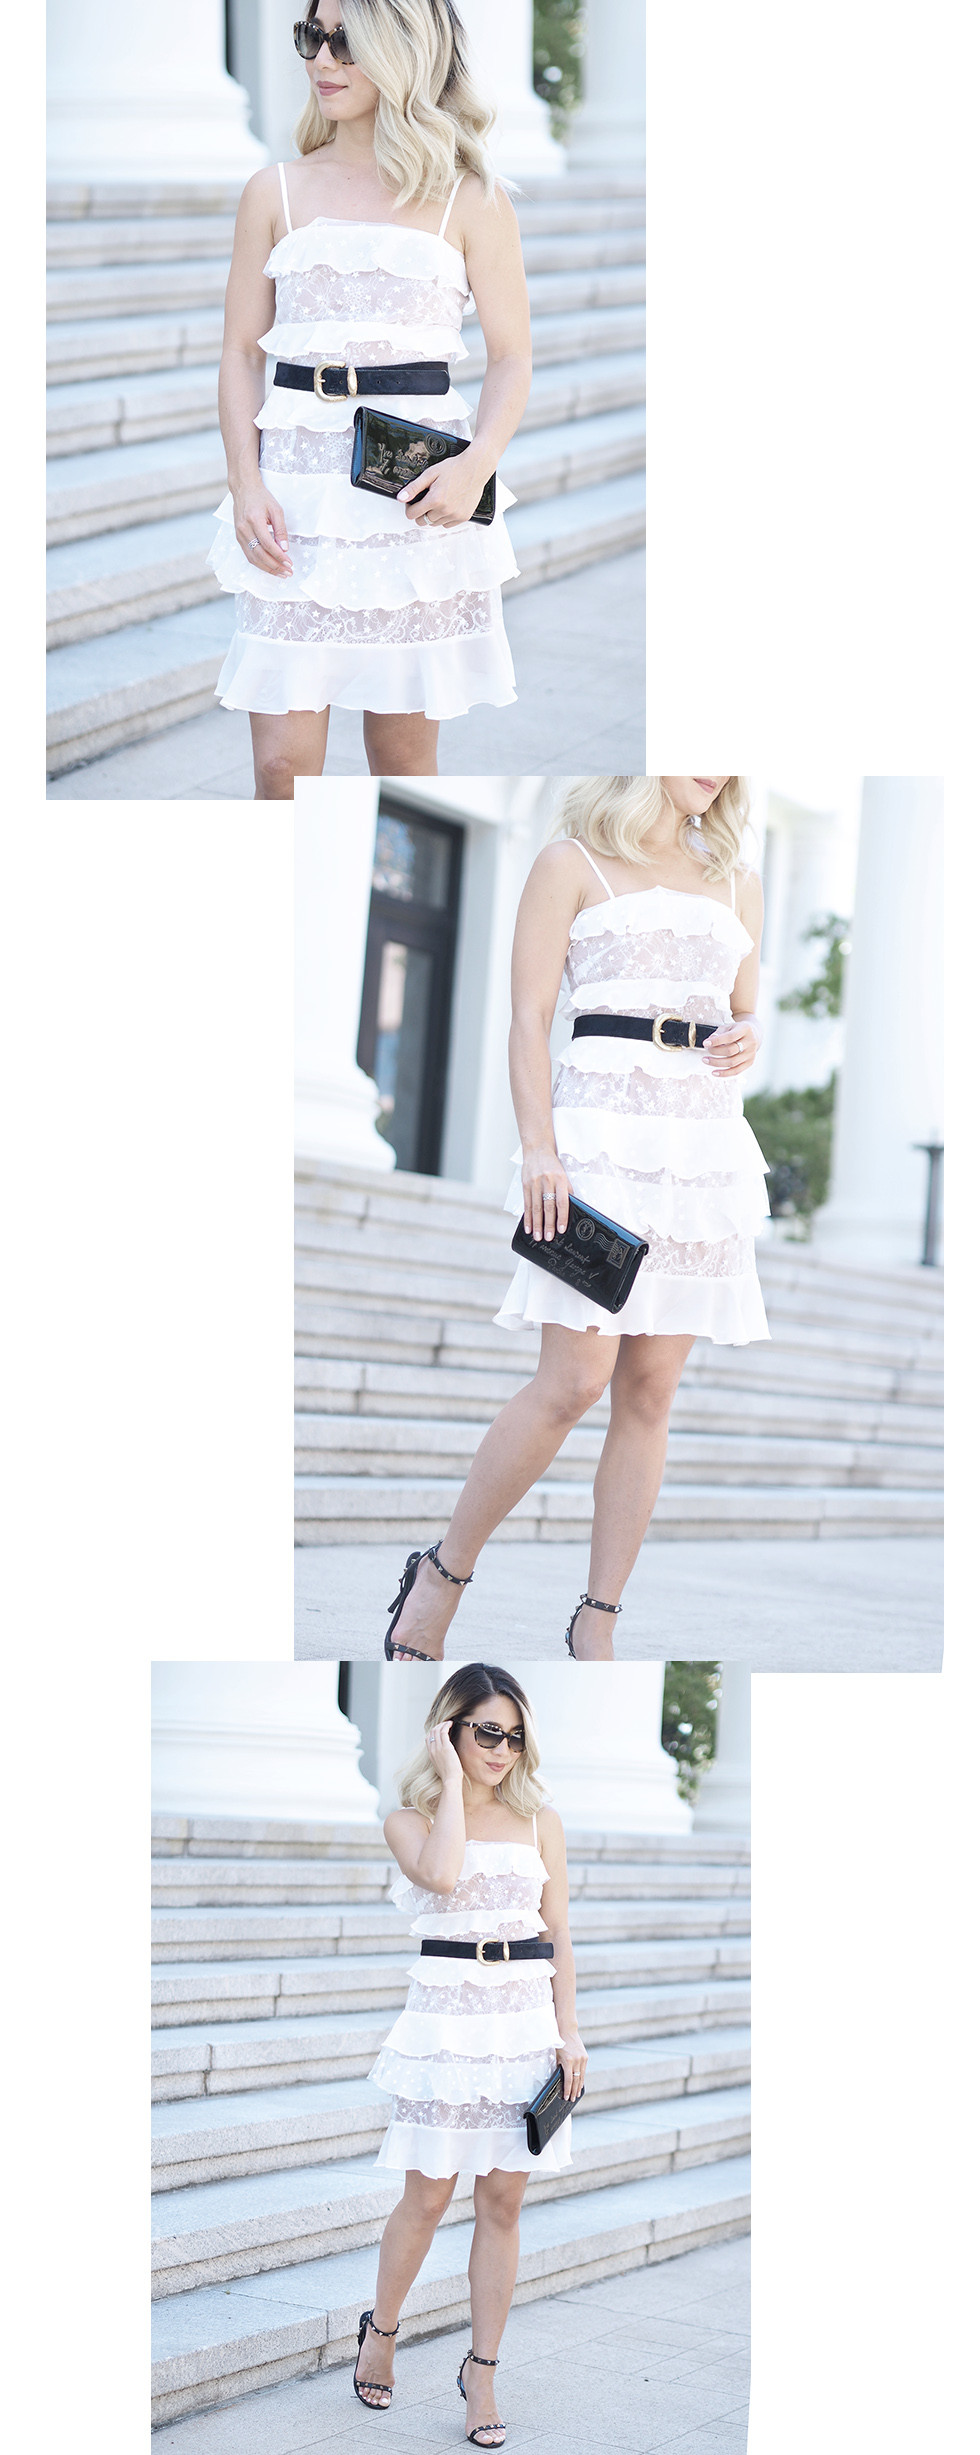 Cosmic Tiered Lace Dress | Lam in Louboutins